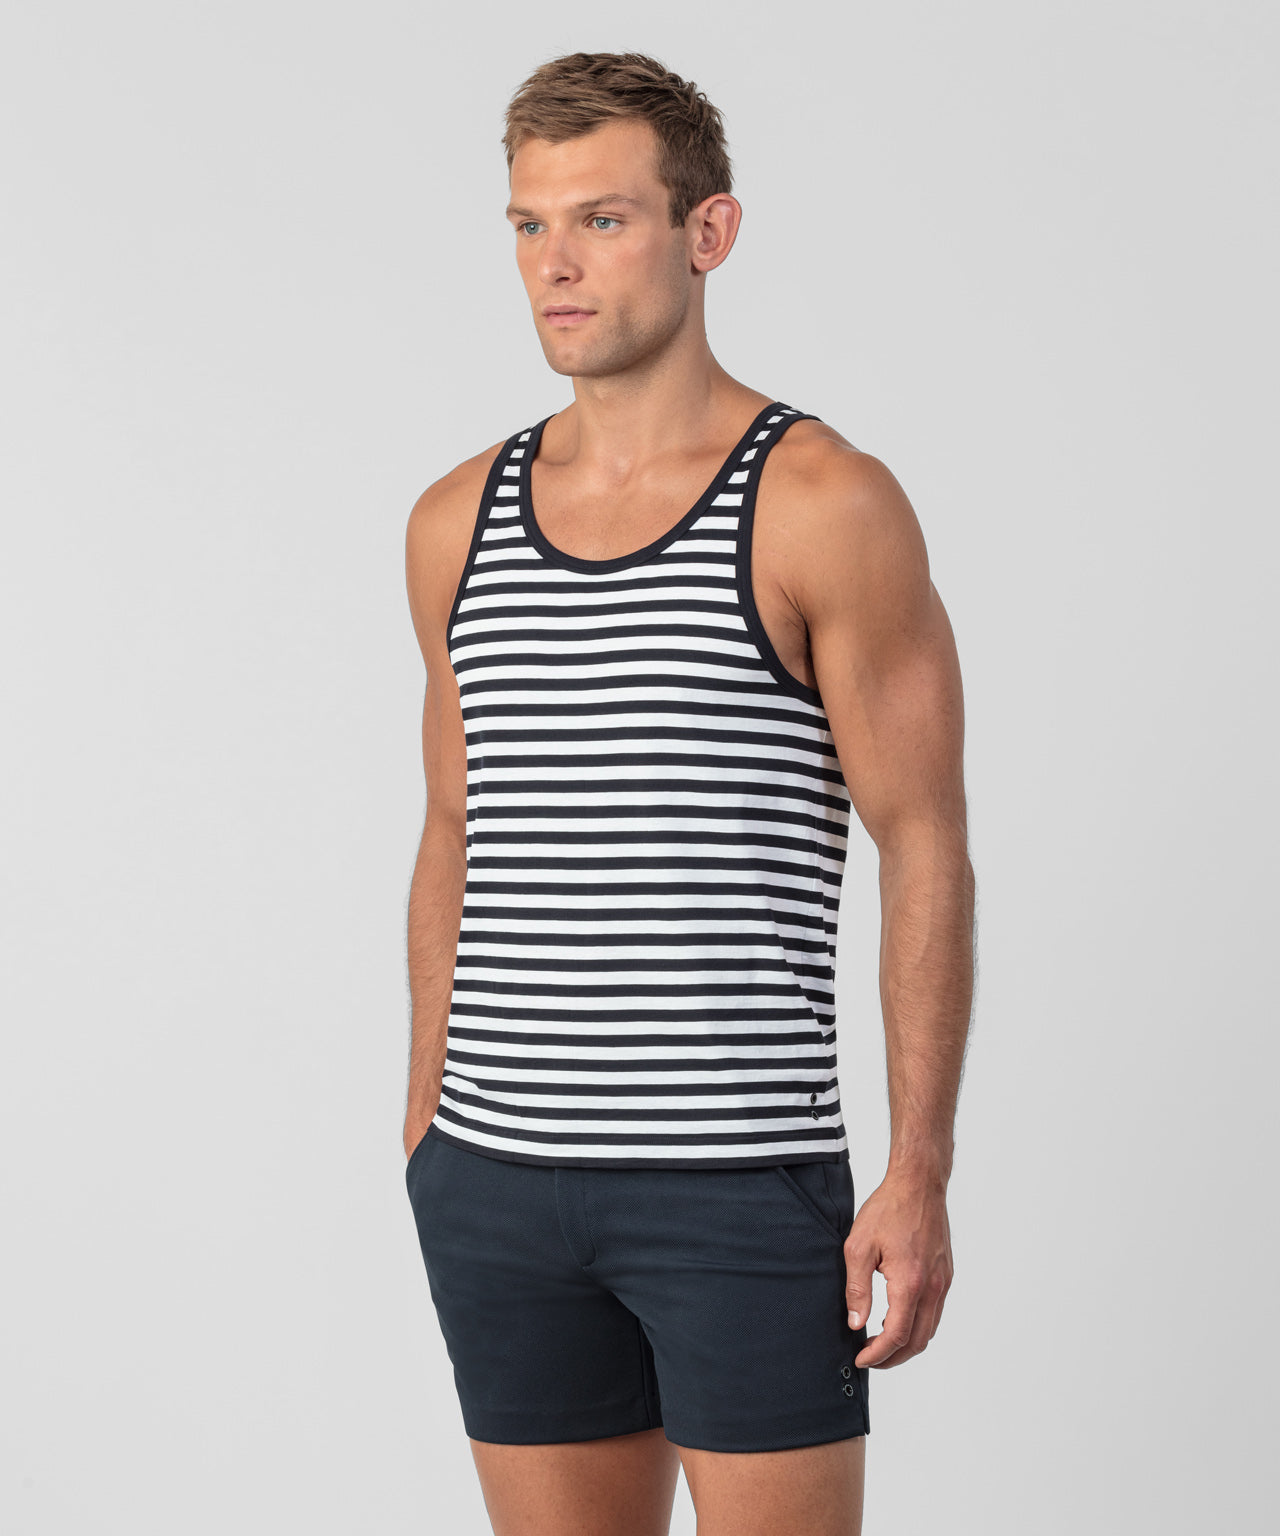 Striped Tank Top - navy / white